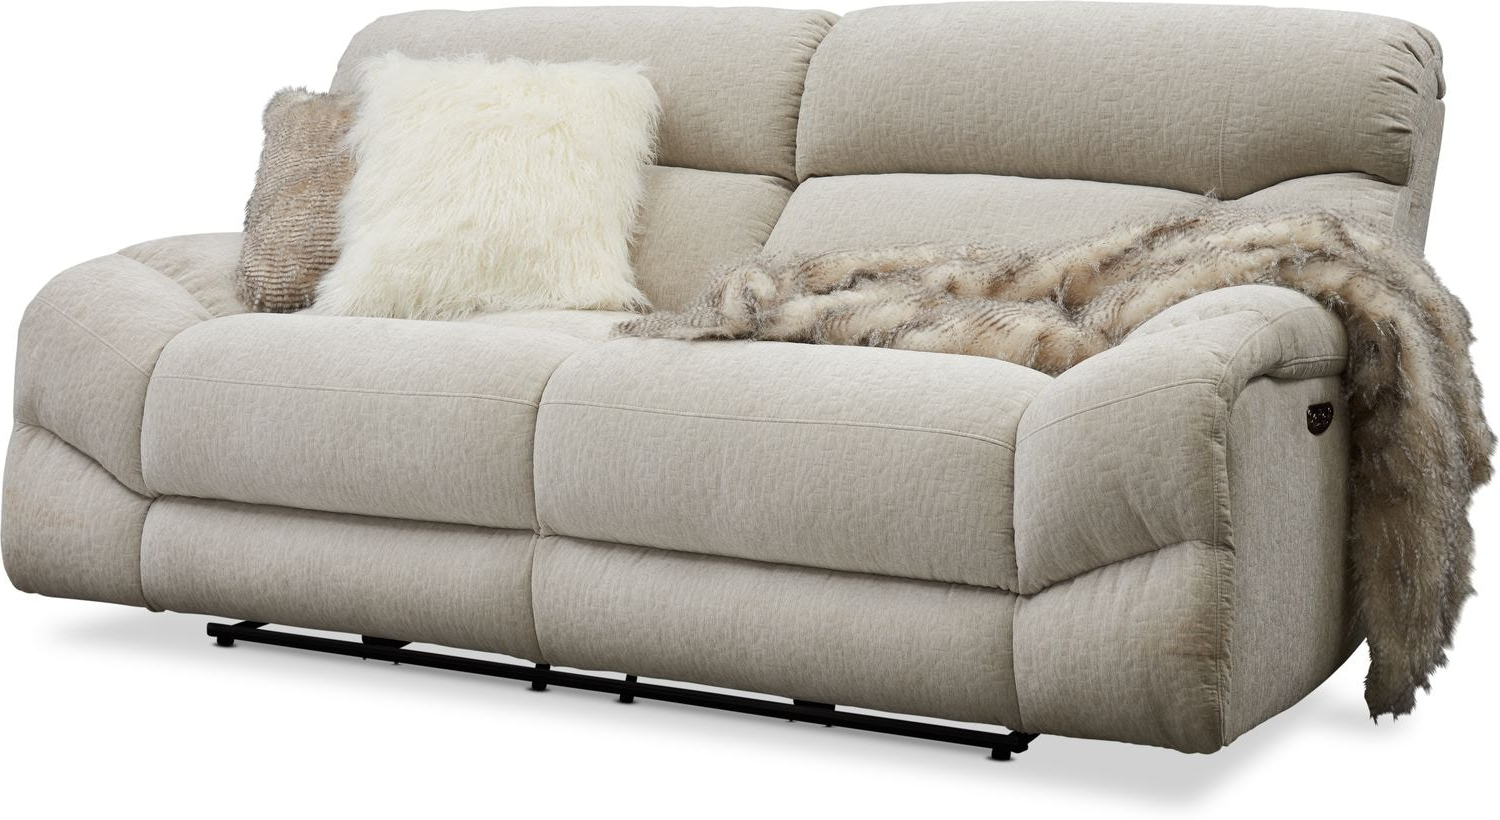 Widely Used Sofa Power Recliner – Latest Sofa Pictures Regarding Trailblazer Gray Leather Power Reclining Sofas (View 8 of 15)